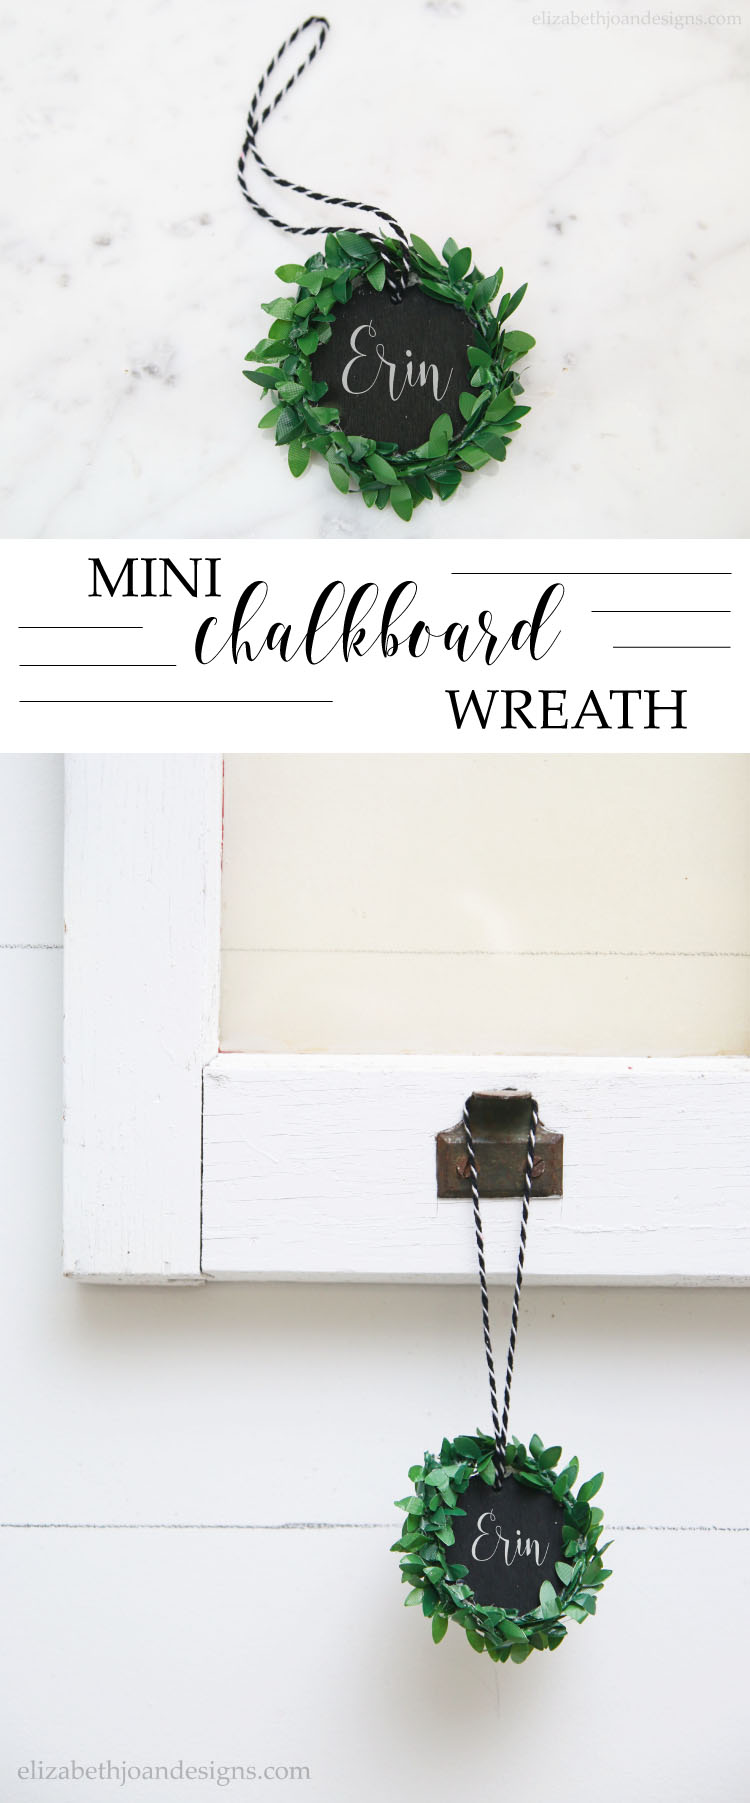 Mini Chalkboard Wreath Ornament a great 5 minute craft that makes for a great Chrsitmas decor or a gift tag